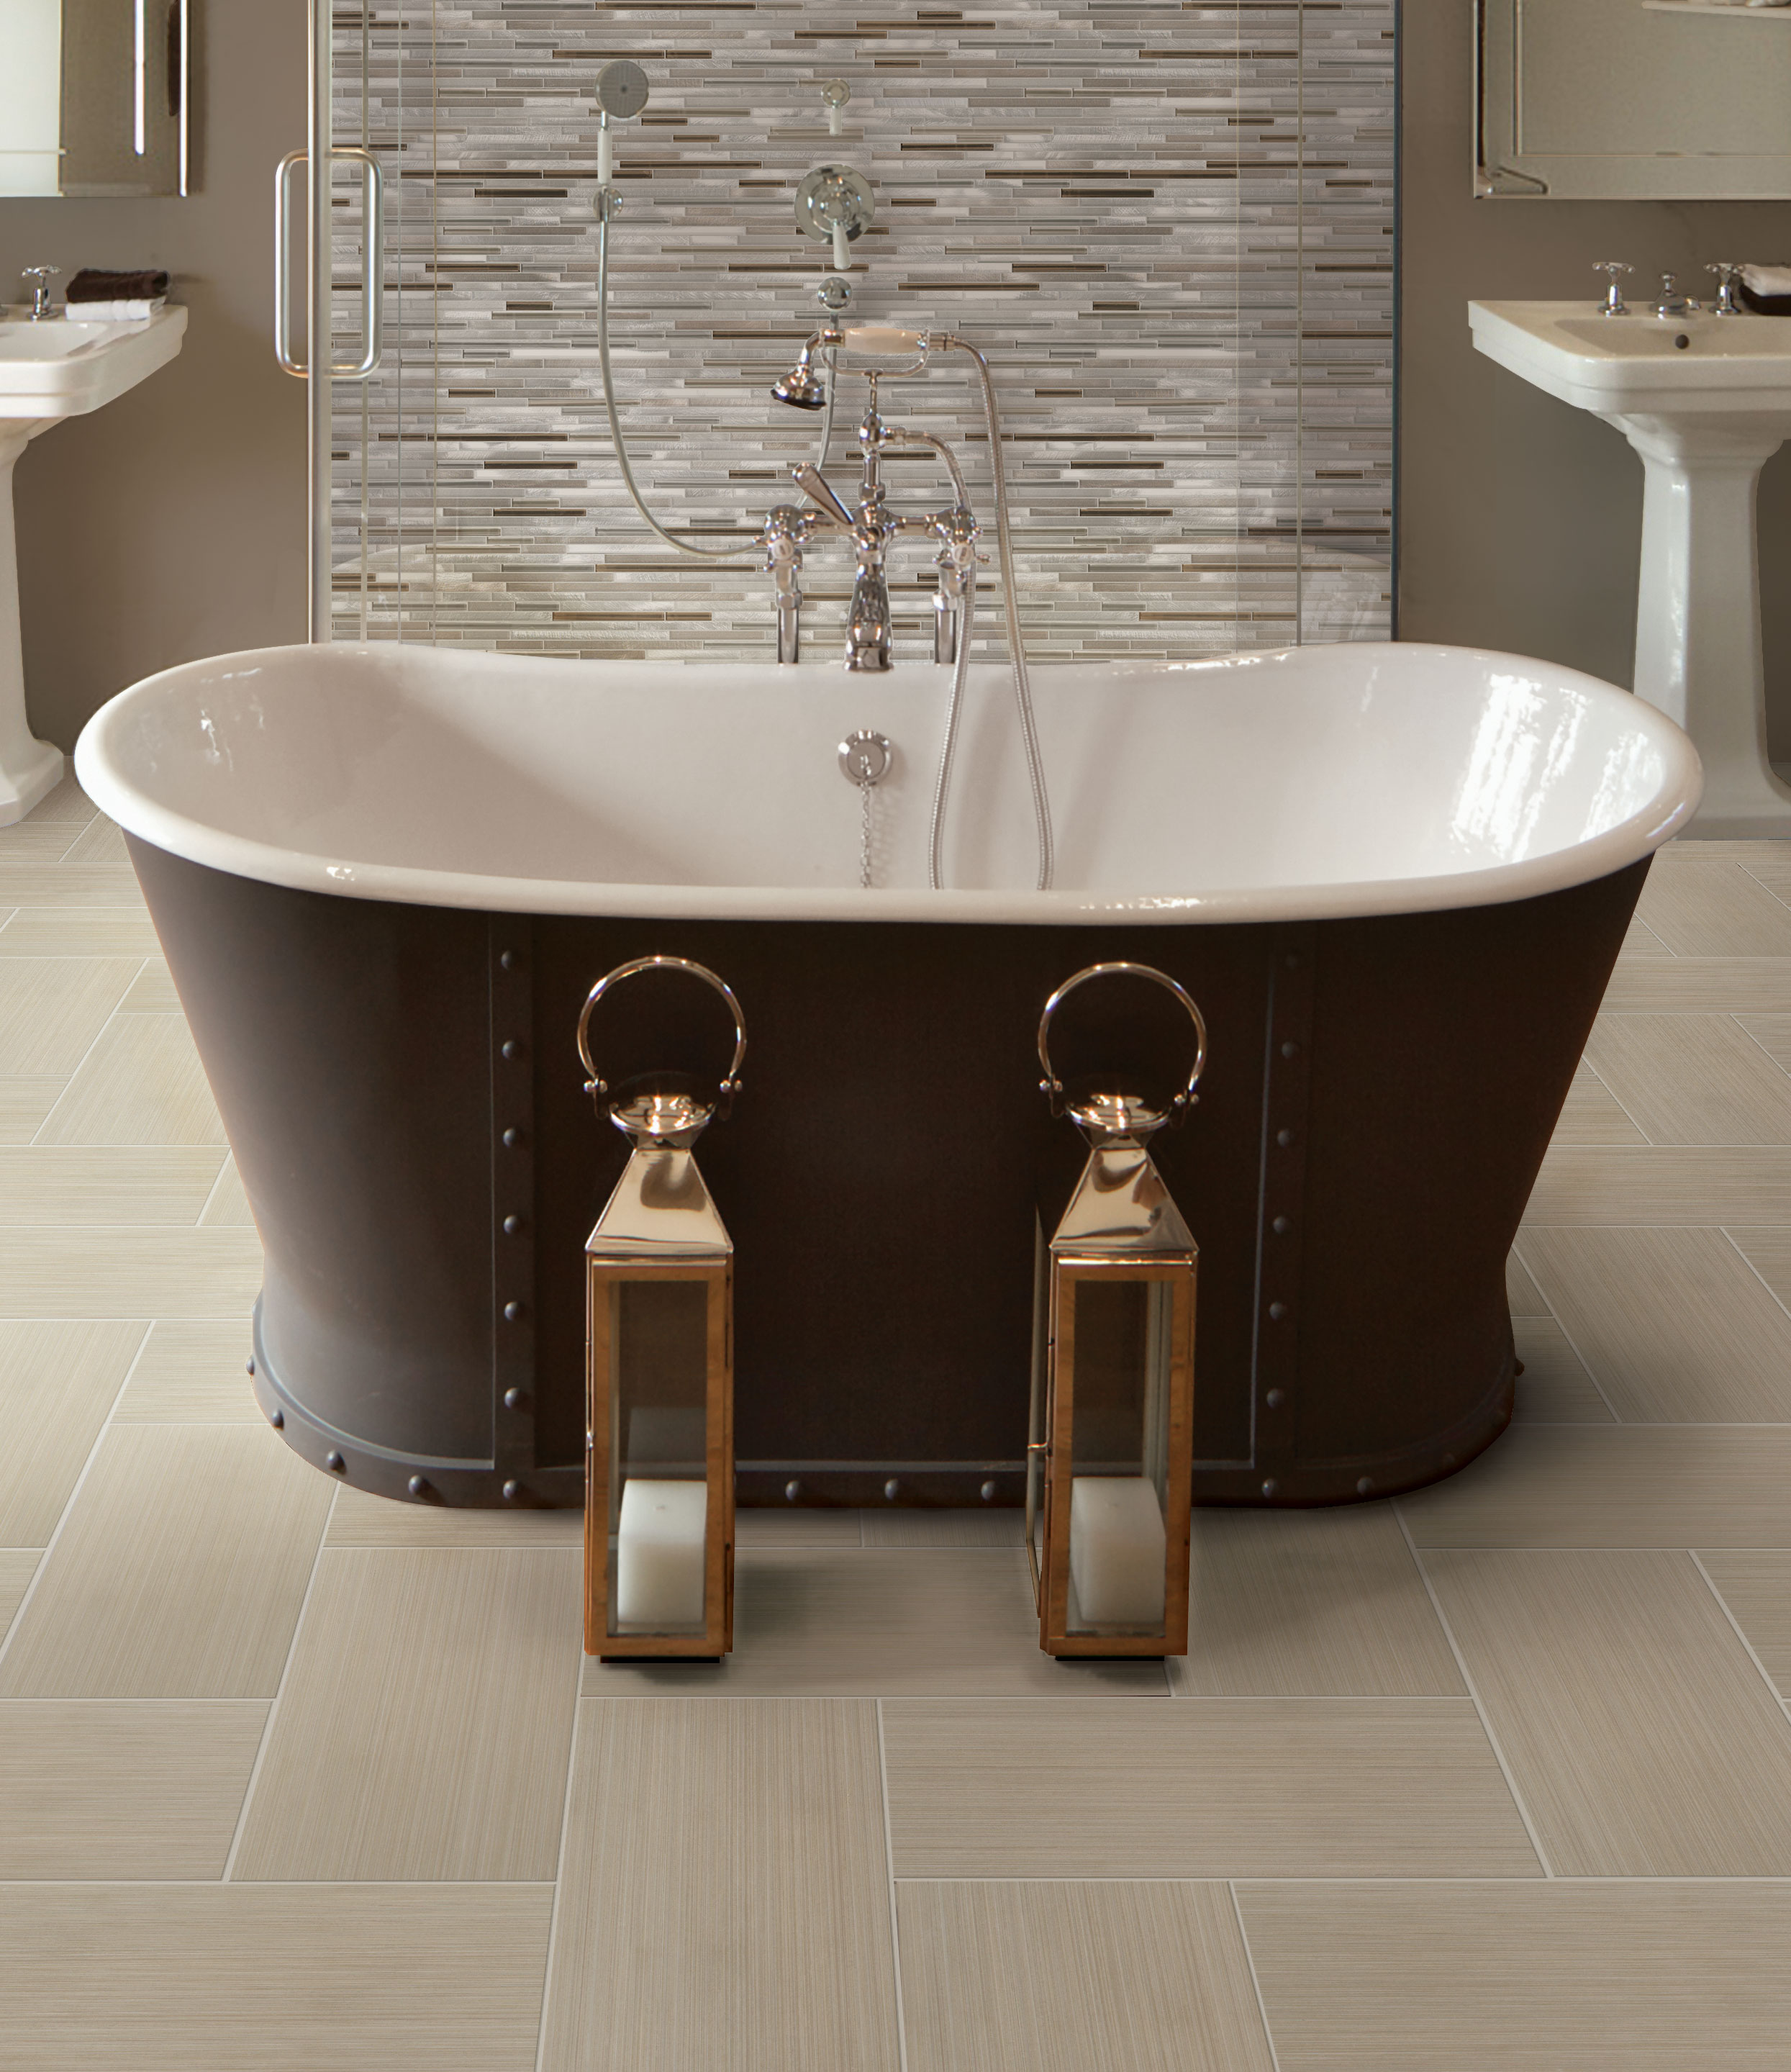 20% off stacked stone tile - select styles